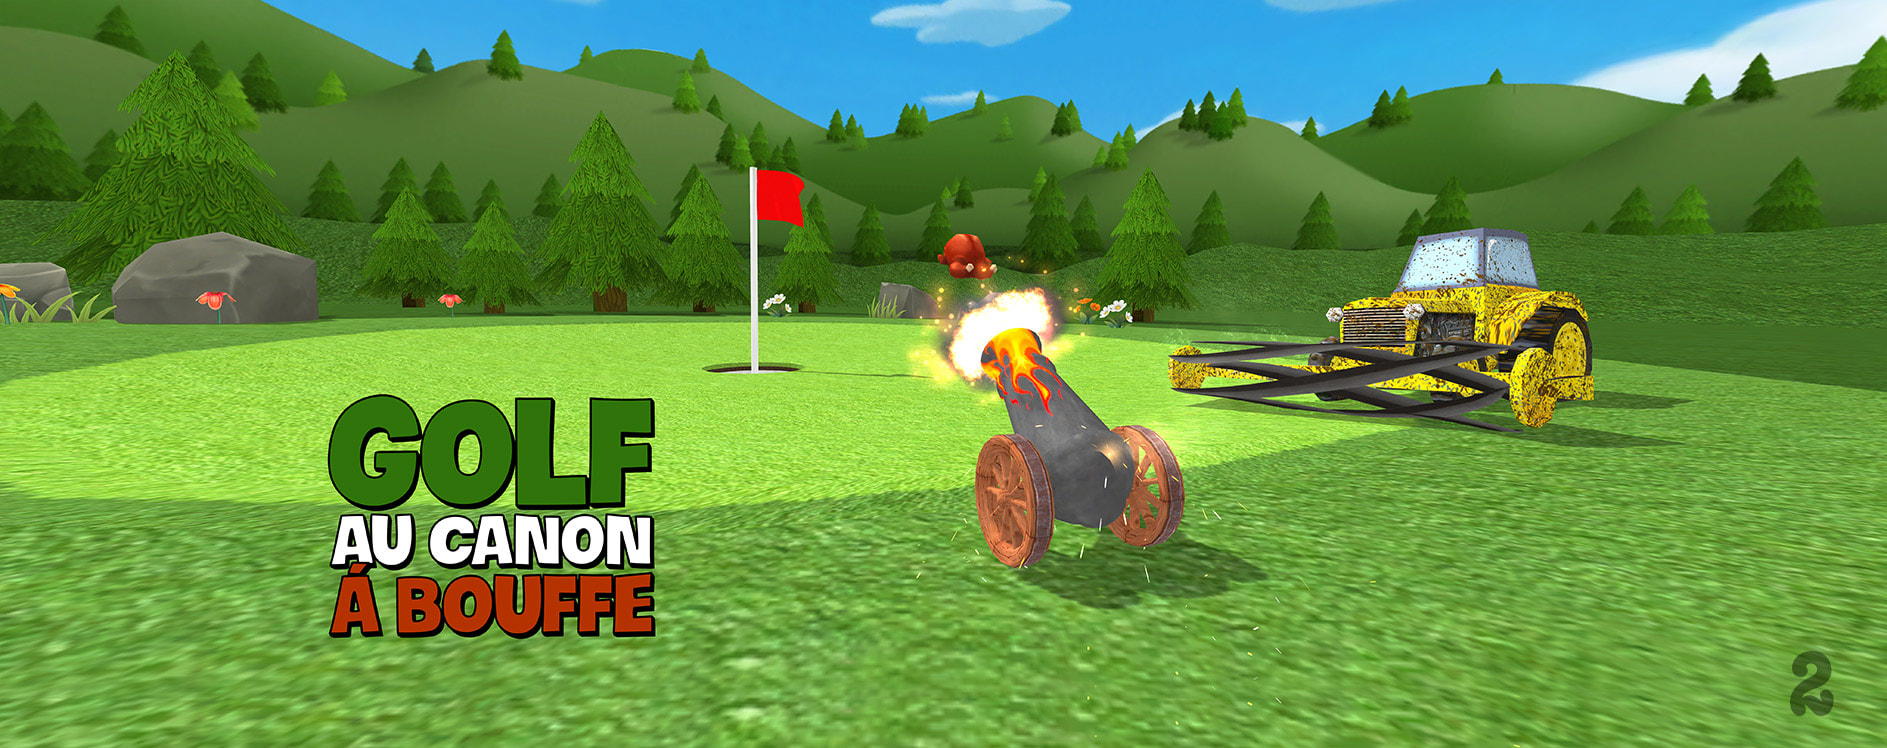 iOS Golf Game in French